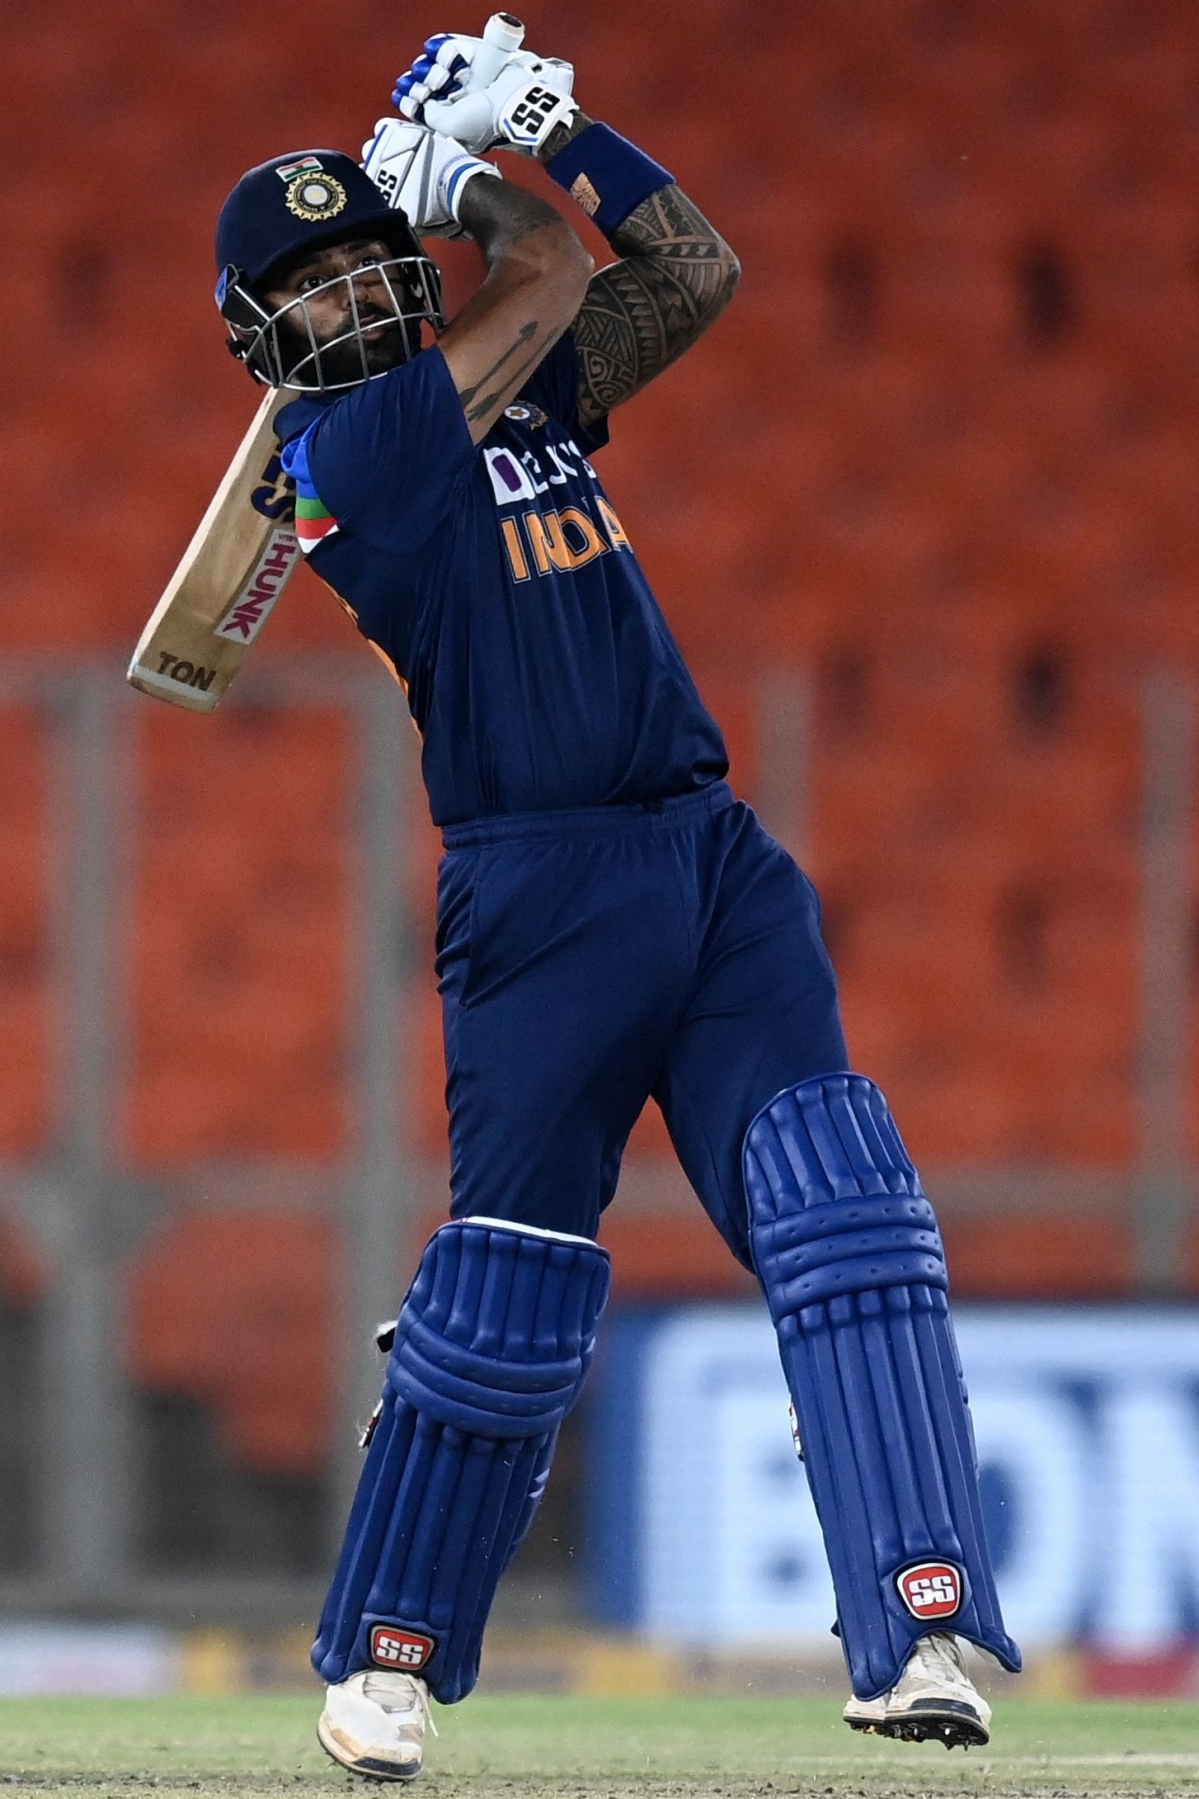 Surya shines bright: Smashes maiden international fifty as India beat England by 8 runs in 4th T20 International, level series 2-2